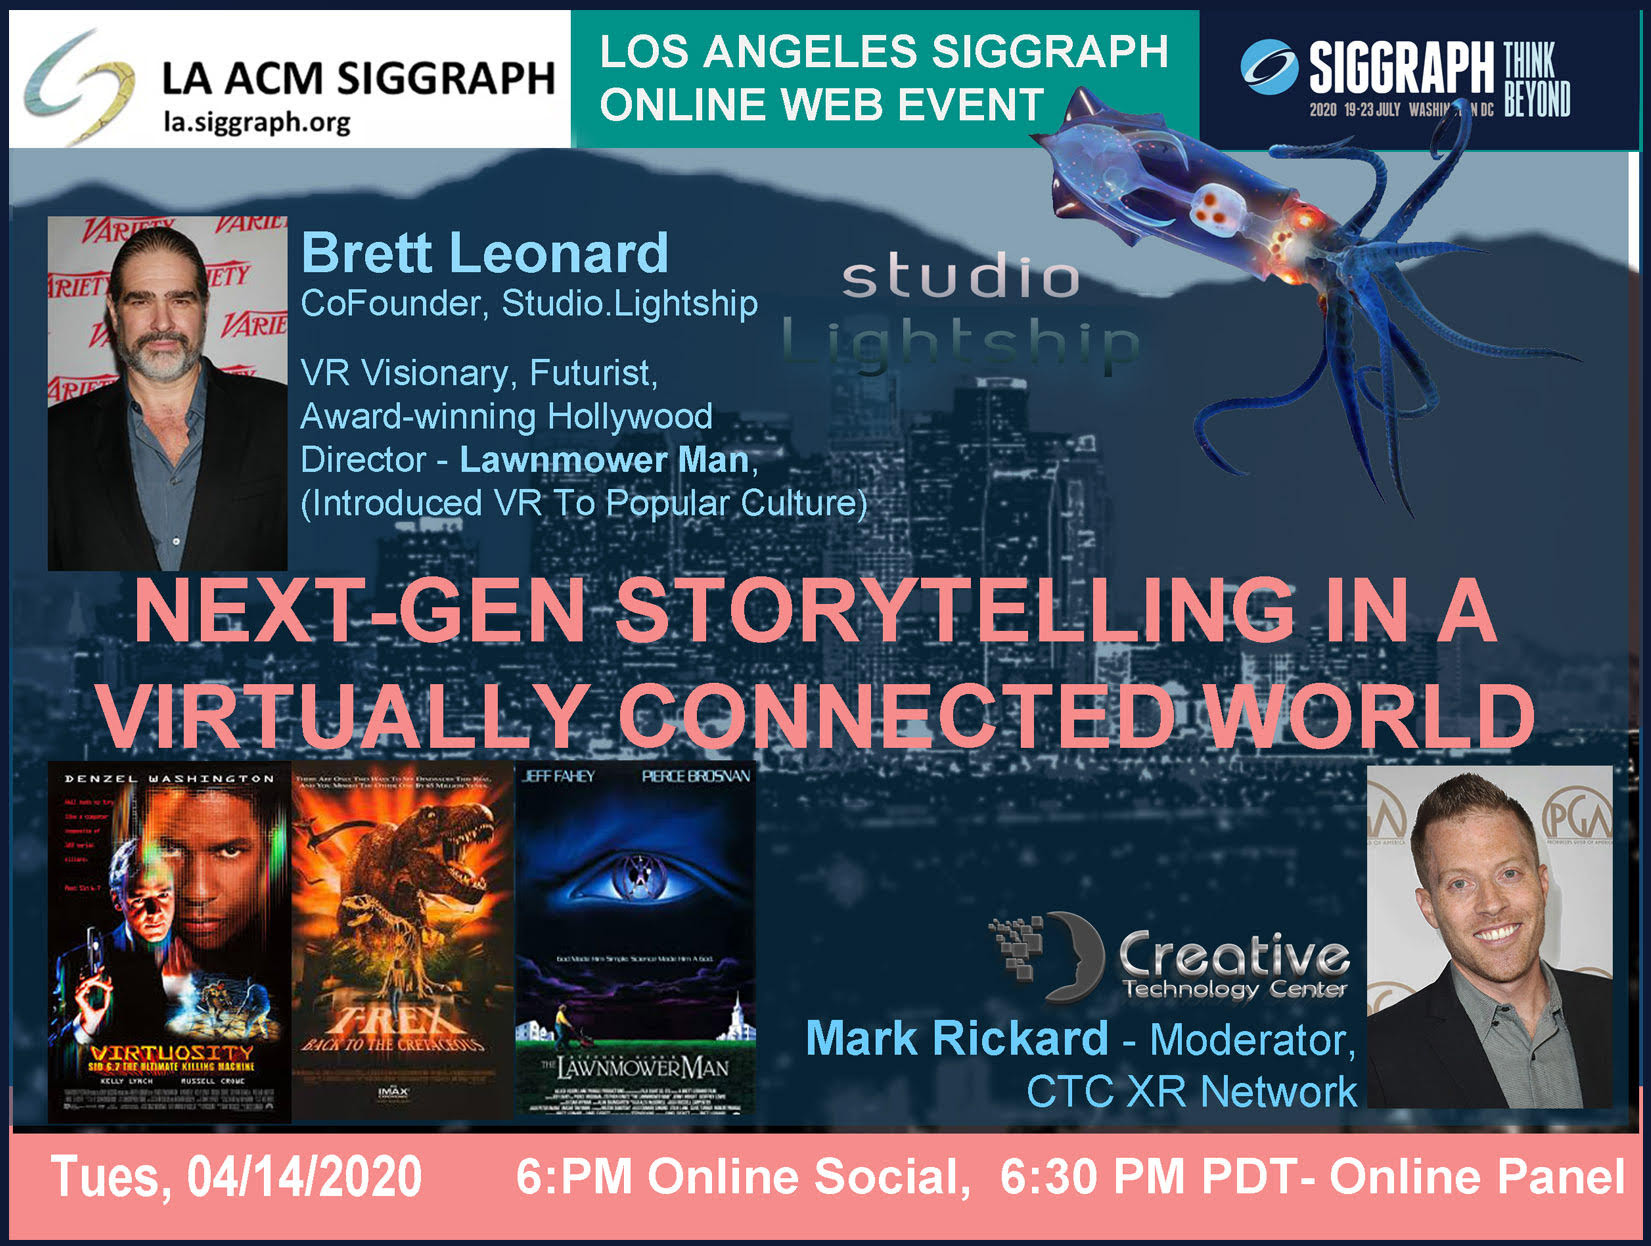 LA ACM SIGGRAPH Hosts Next Gen Story Telling in a Virtually Connected World Event